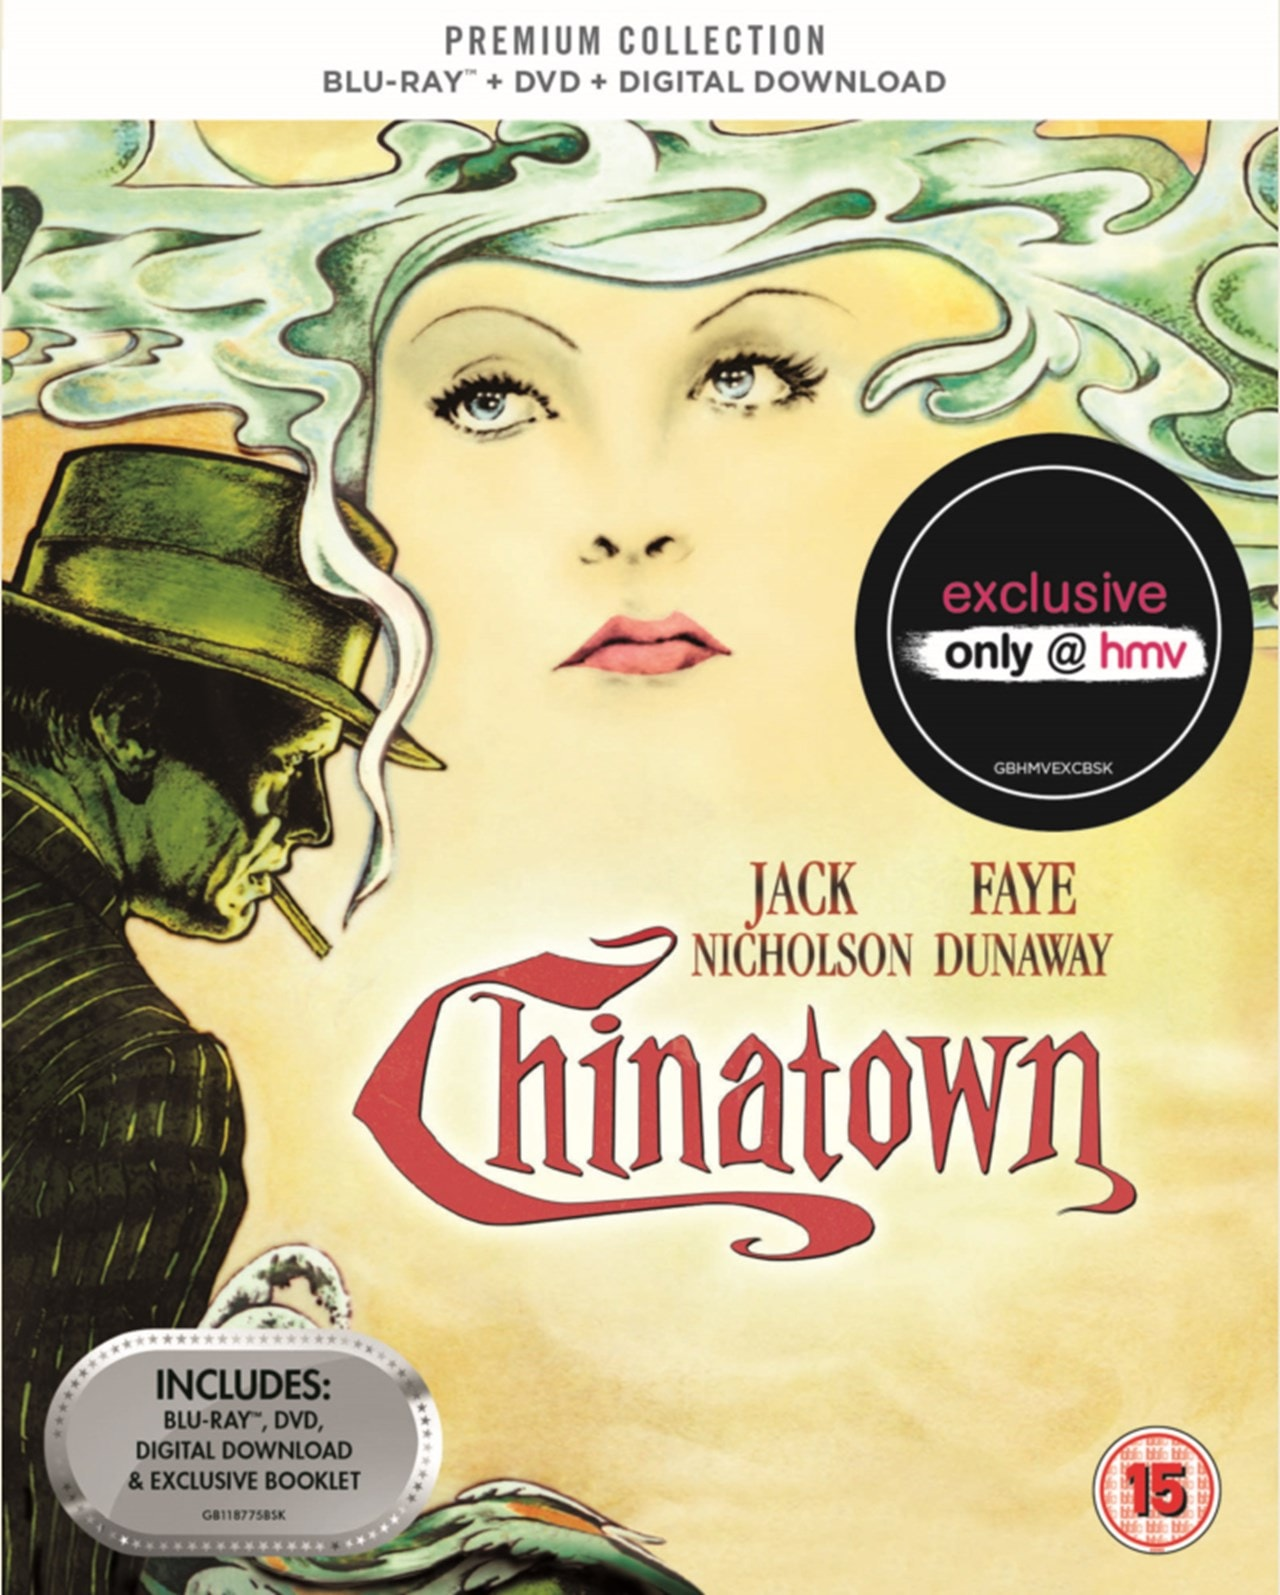 Chinatown (hmv Exclusive) - The Premium Collection - 1